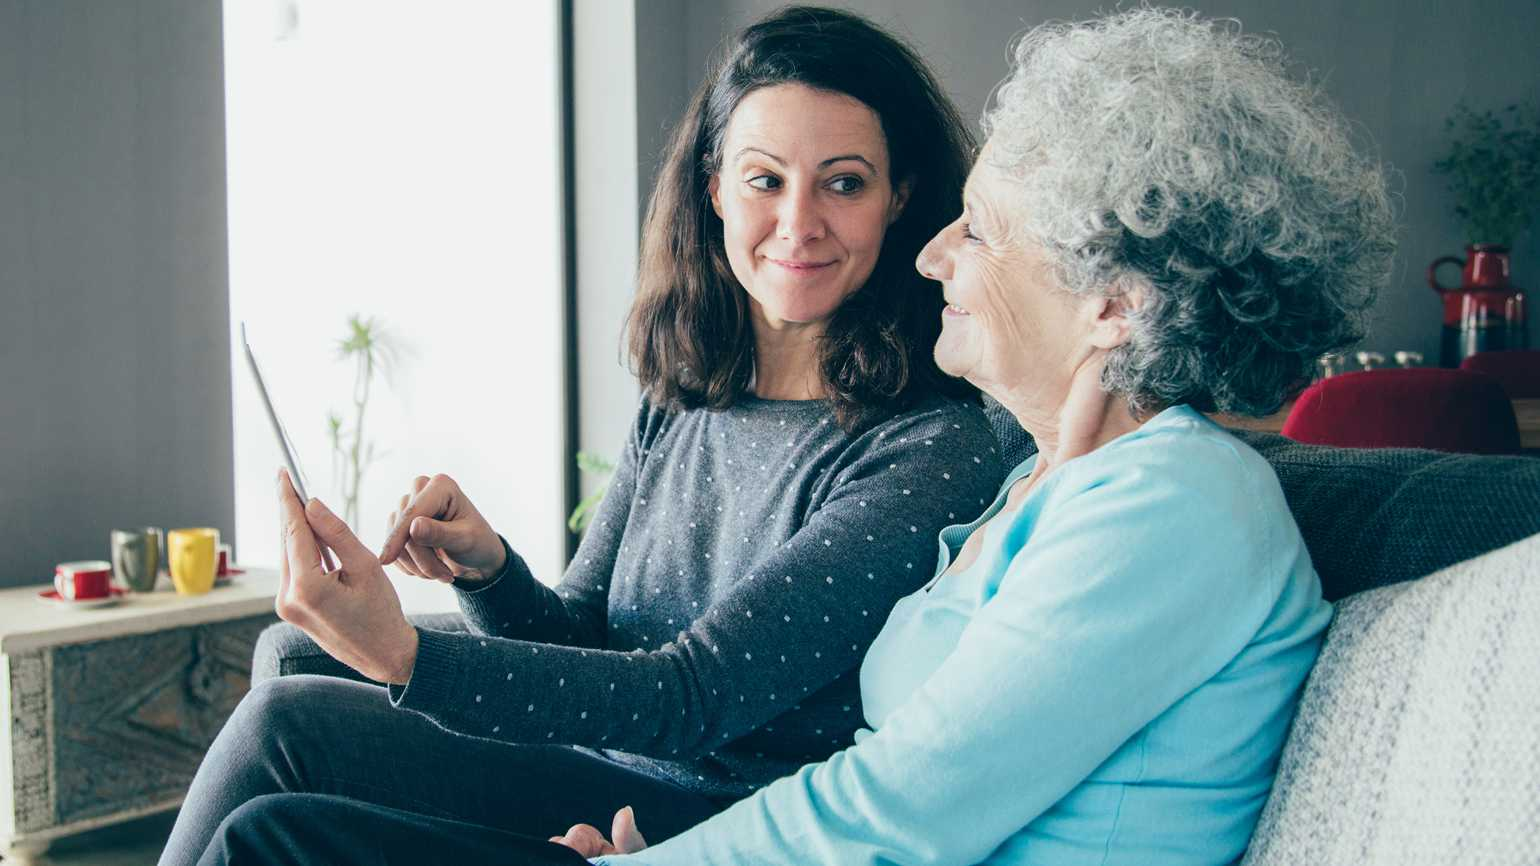 A woman in her golden years spending time with her daughter in their home.